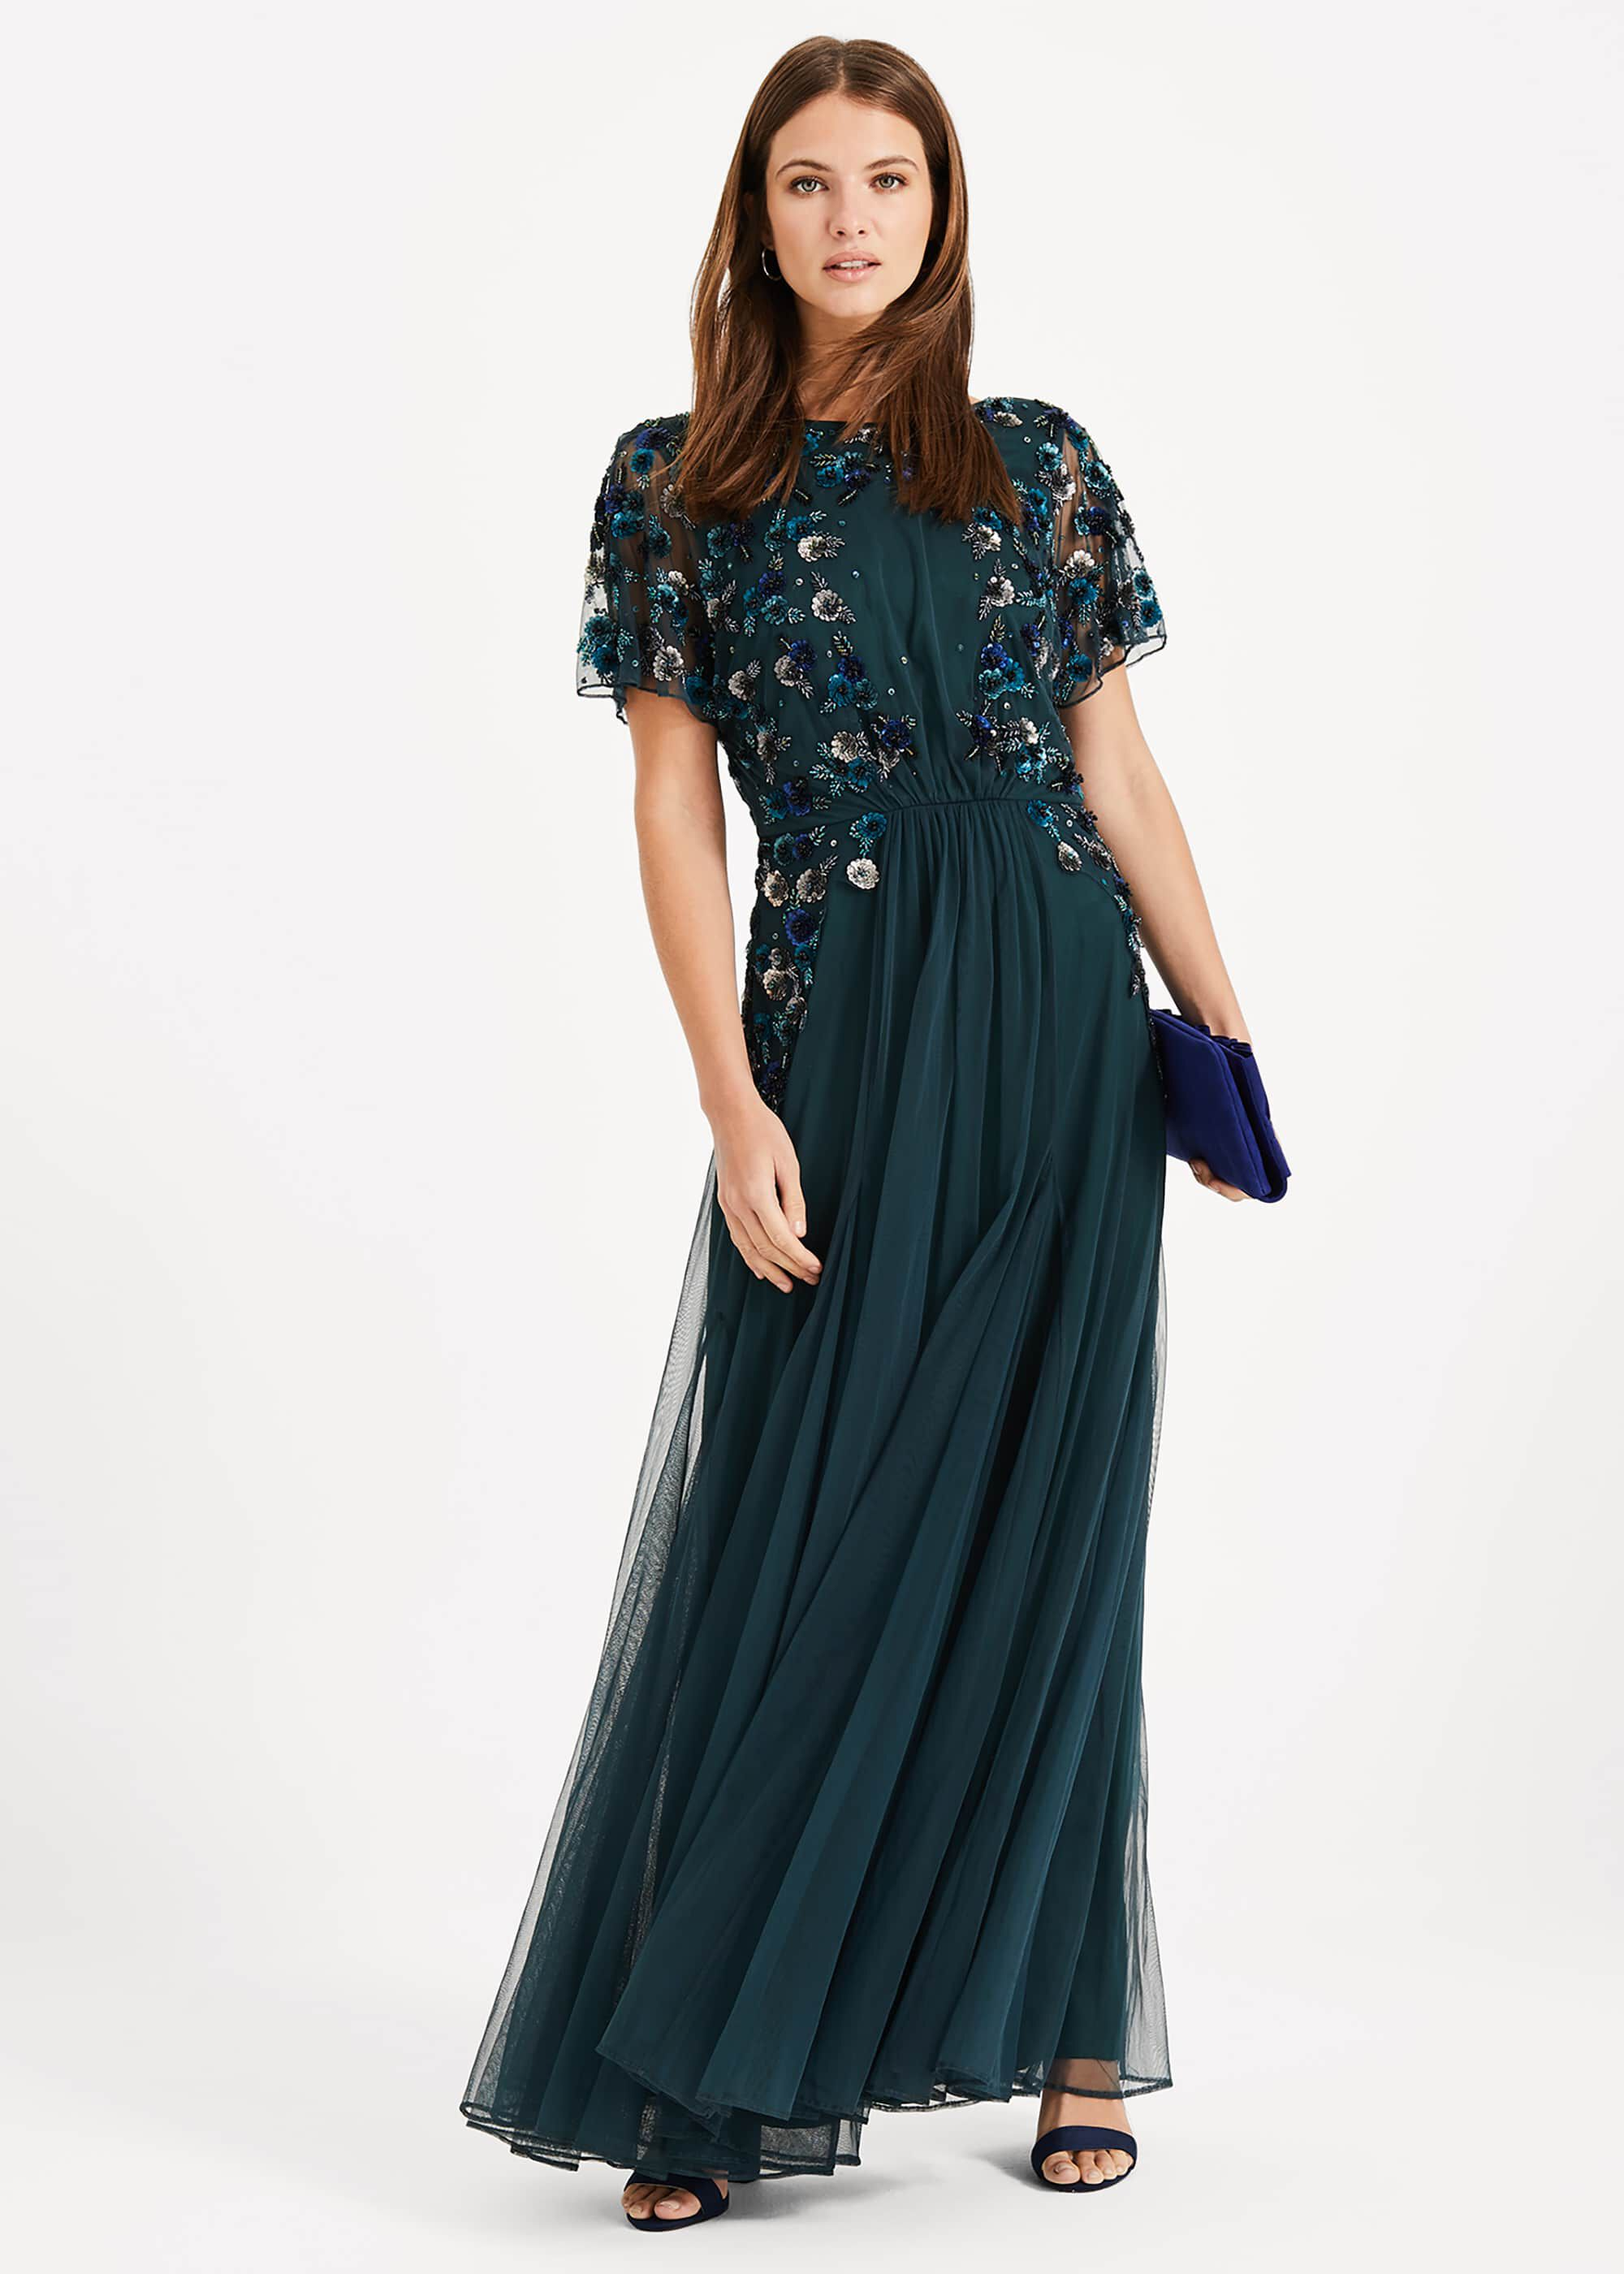 Phase Eight Arlette Beaded Maxi Dress, Green, Maxi